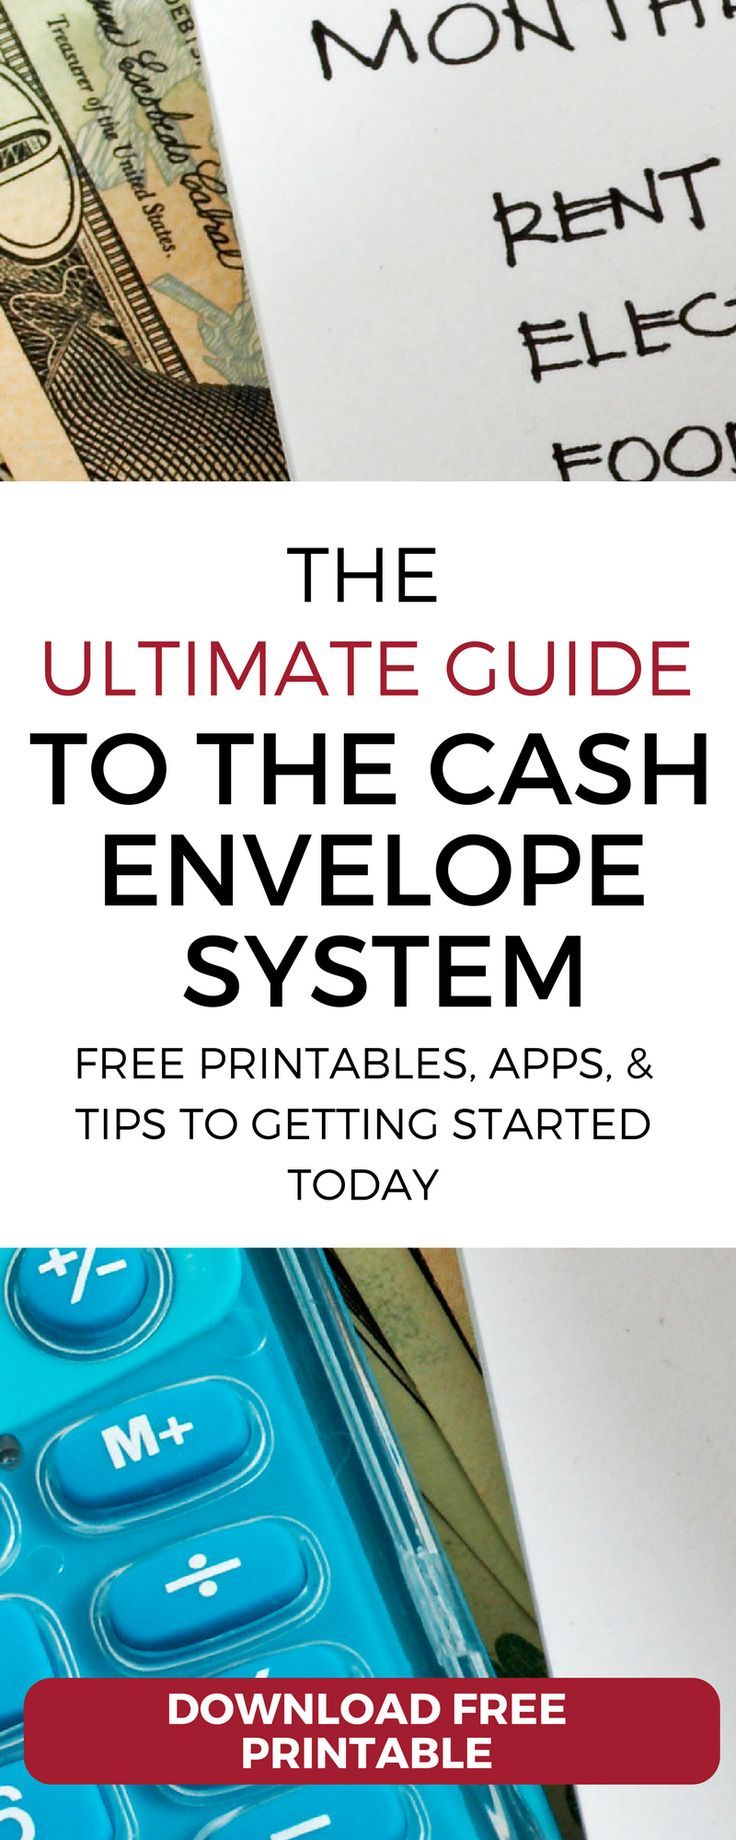 Never been able to stick to a budget? Discover how the envelope budget system works. The budgeting method Dave Ramsey recommends. Plus get access to free printables and apps based on the envelope budgeting method. via @https://www.pinterest.com/thewaystowealth/